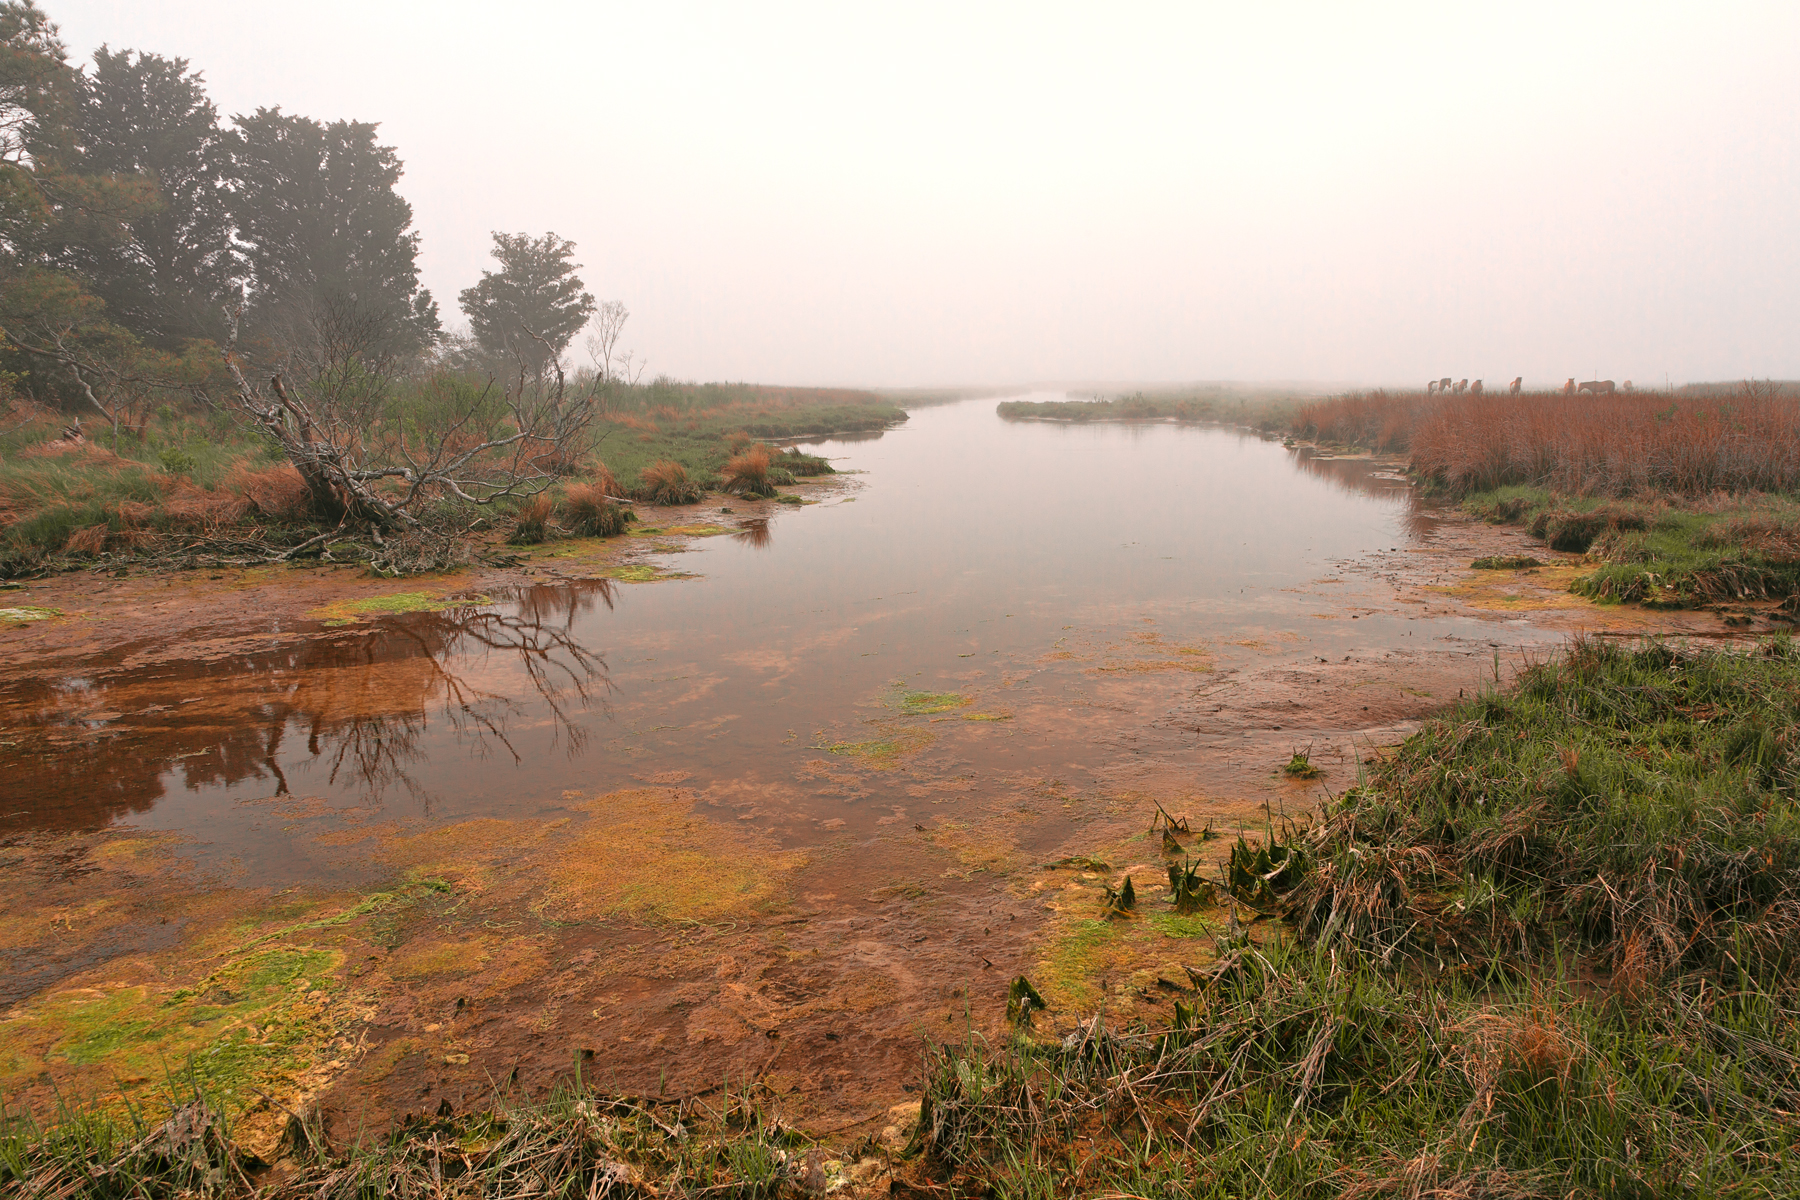 Misty assateague island marsh - hdr photo